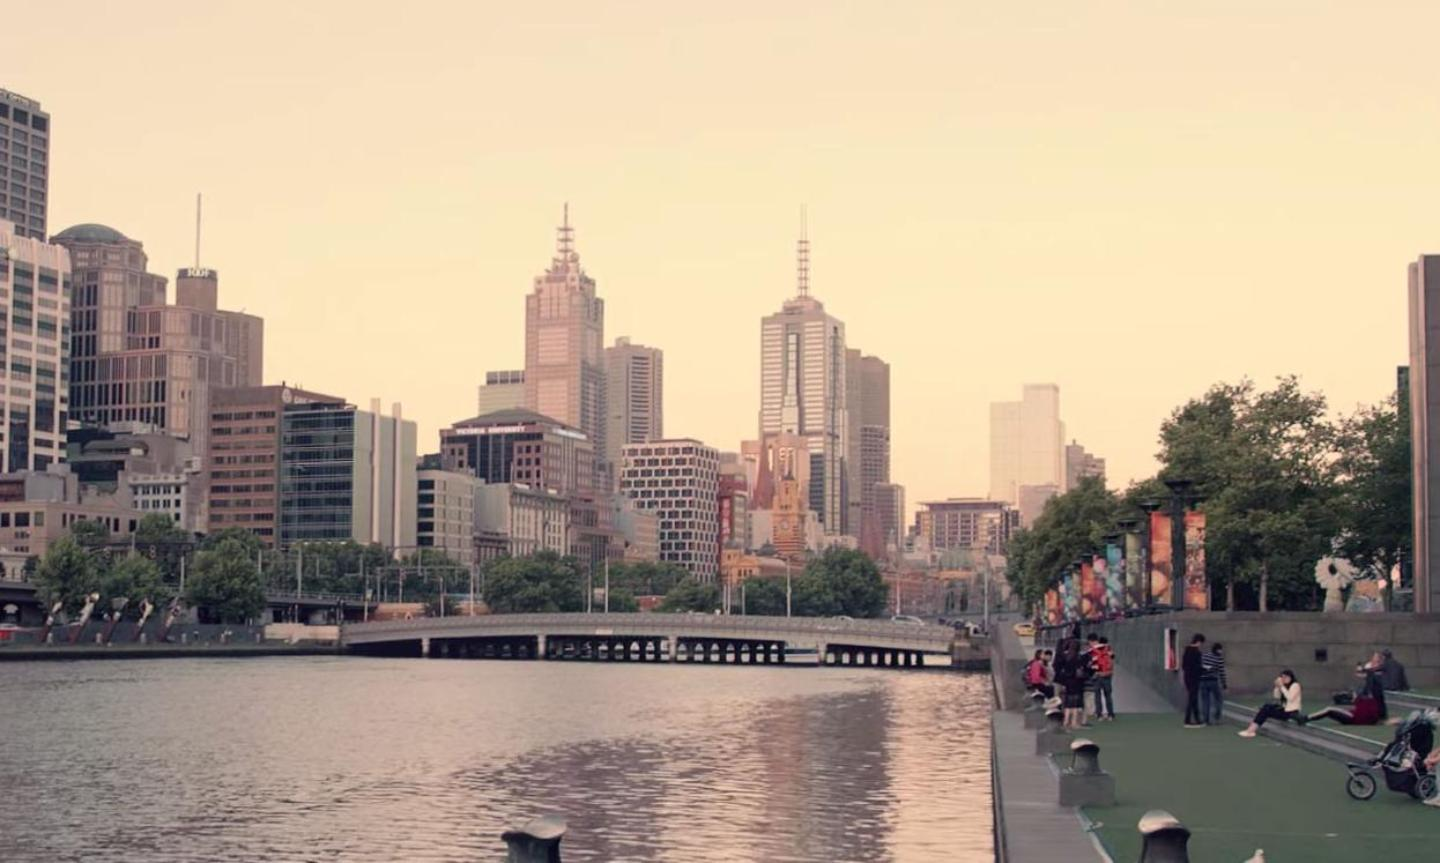 Yarra river and city